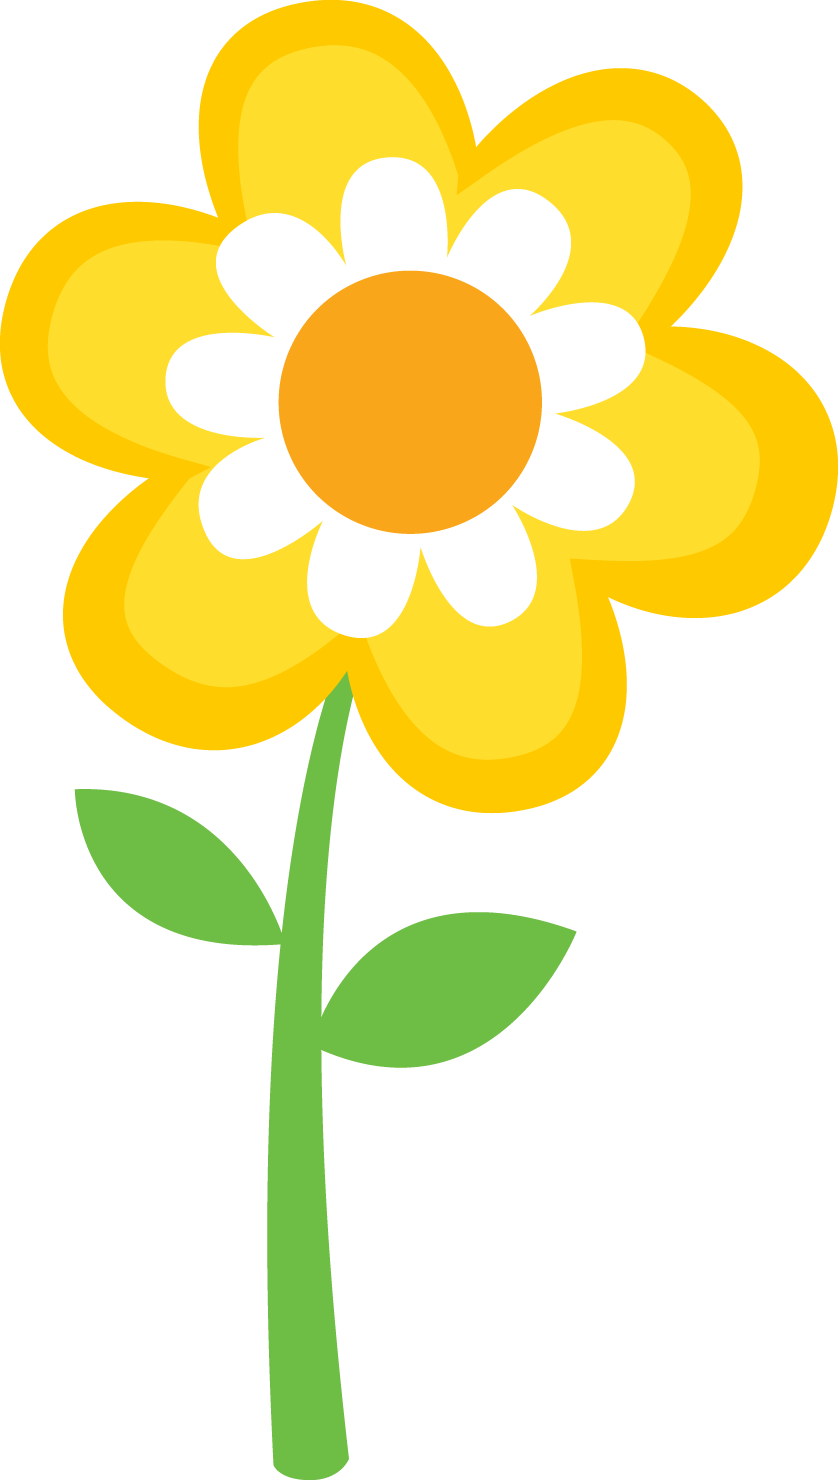 Clipart books flower. I rgqup koqy png